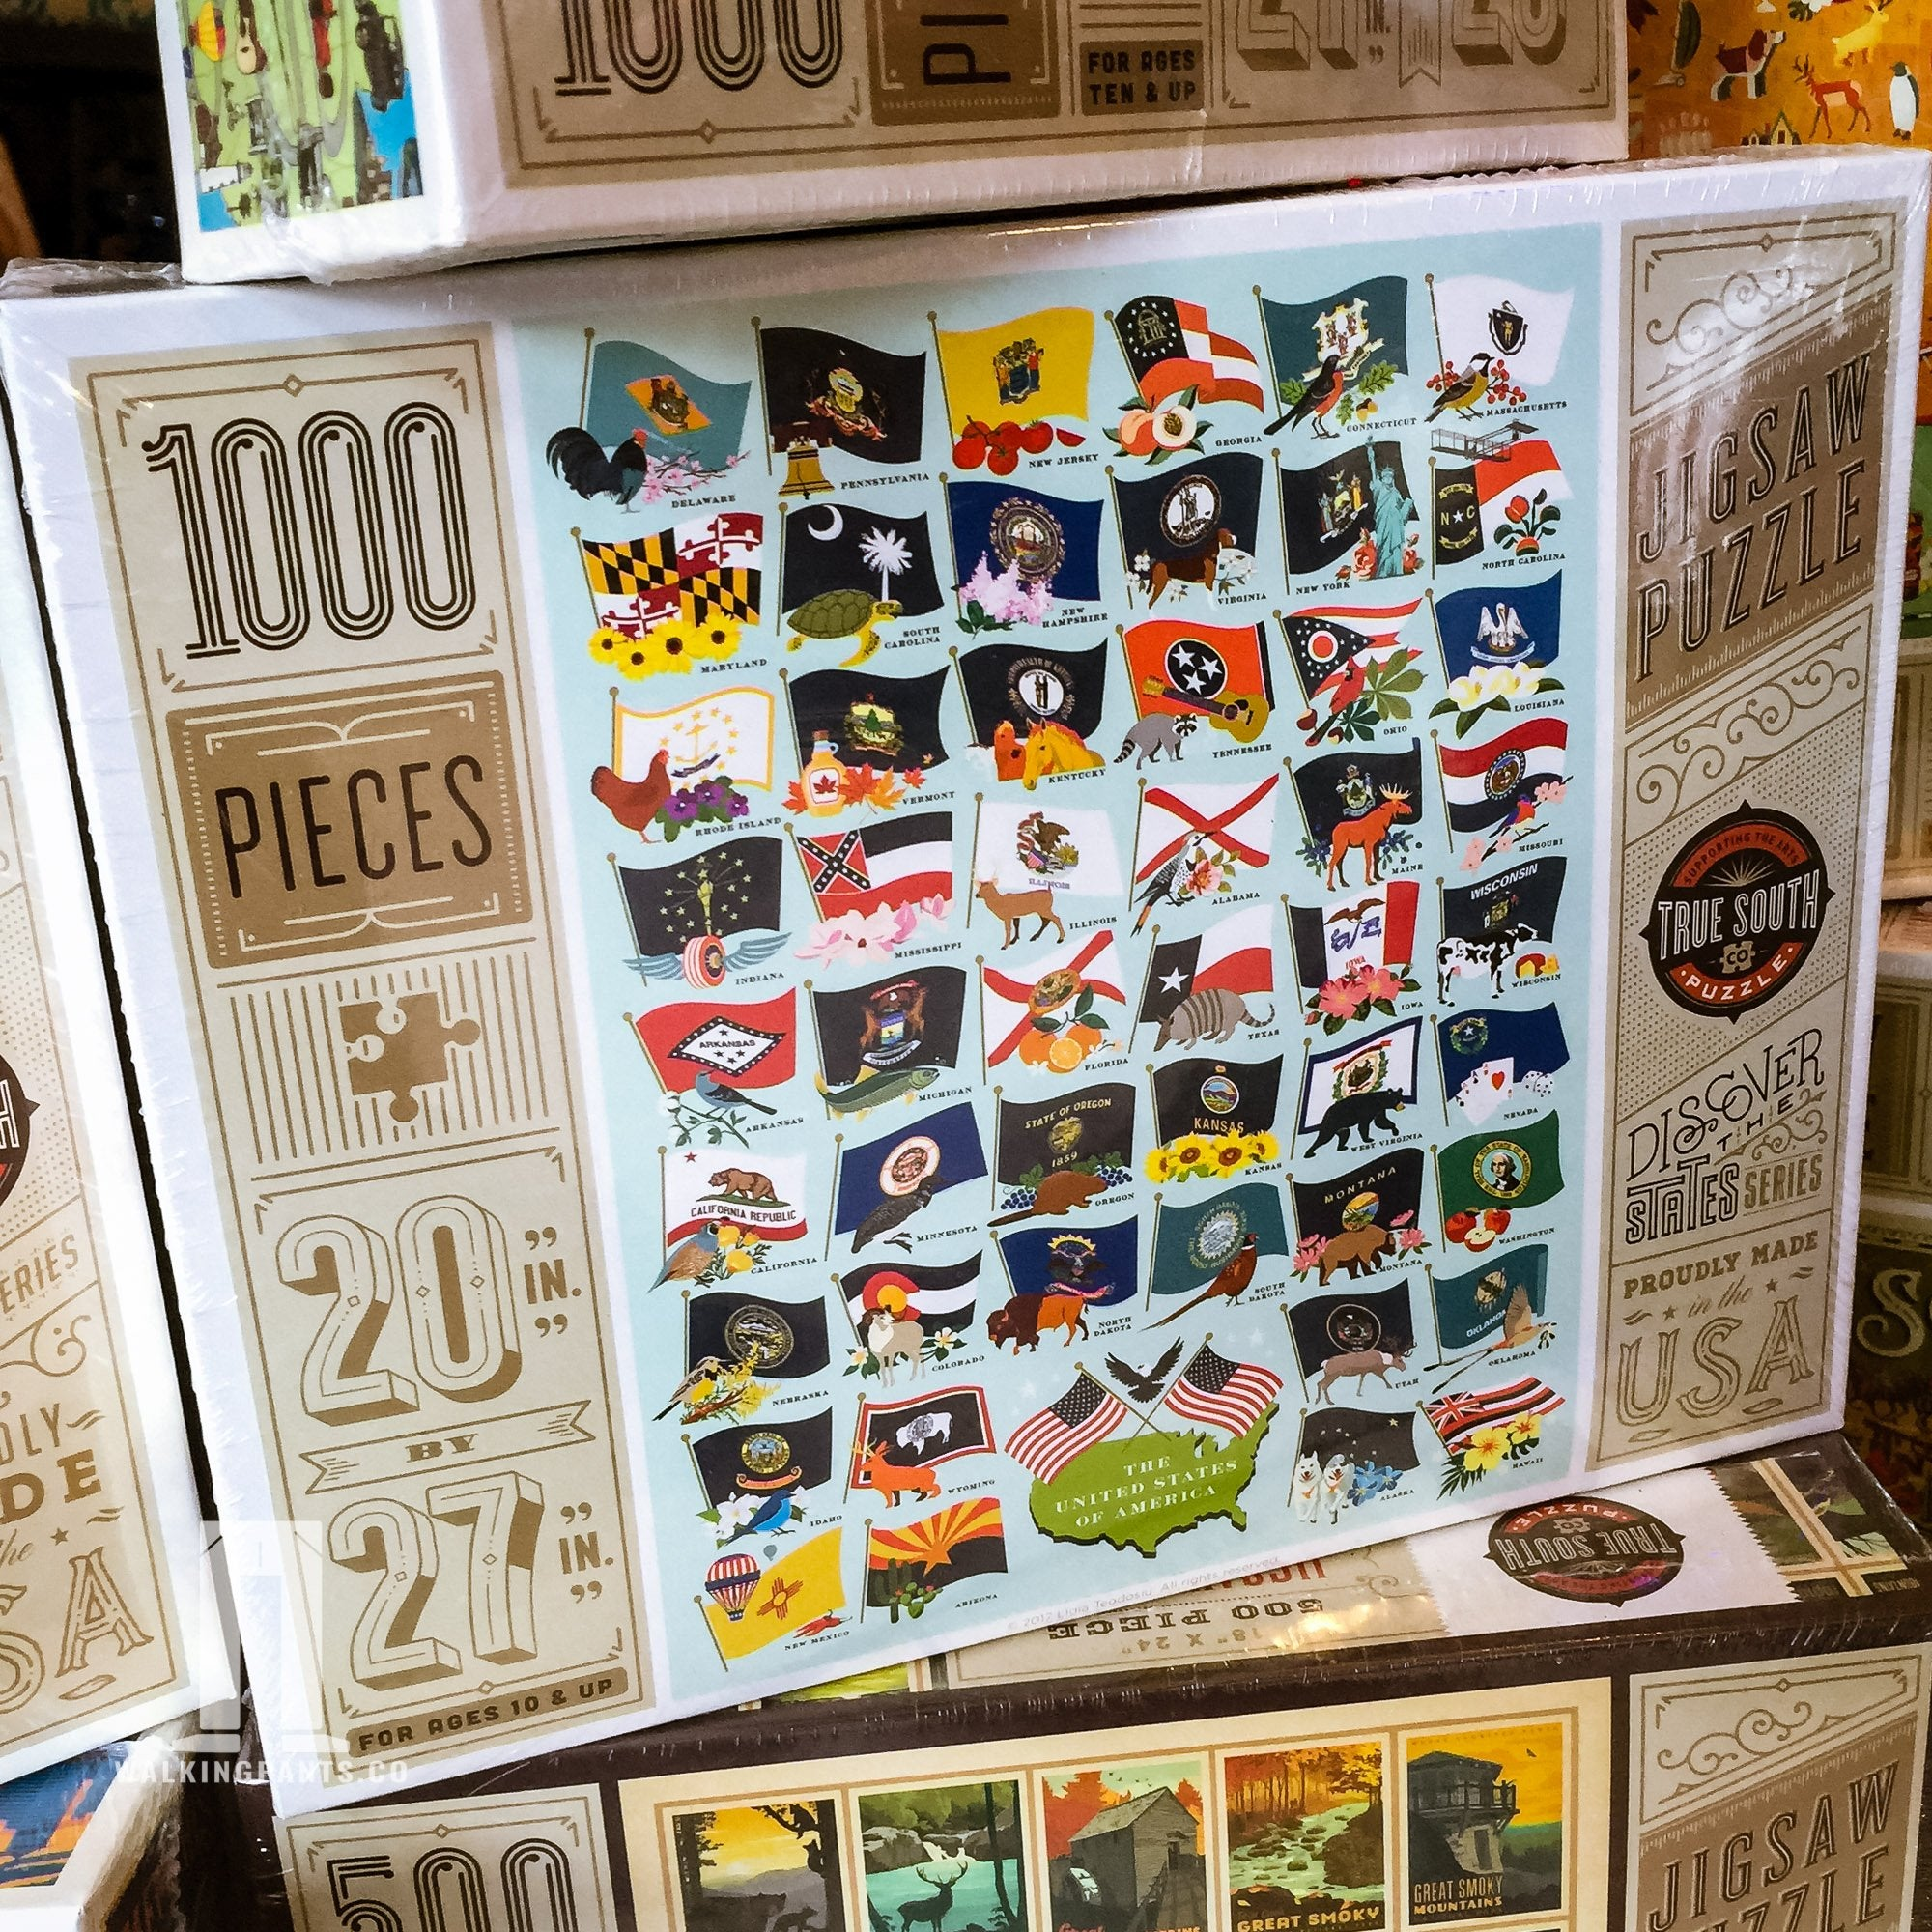 Buy United States Flags, 1000 Piece Jigsaw Puzzle from Walking Pants Curiosities, the Most un-General Gift Store in Downtown Memphis, Tennessee!